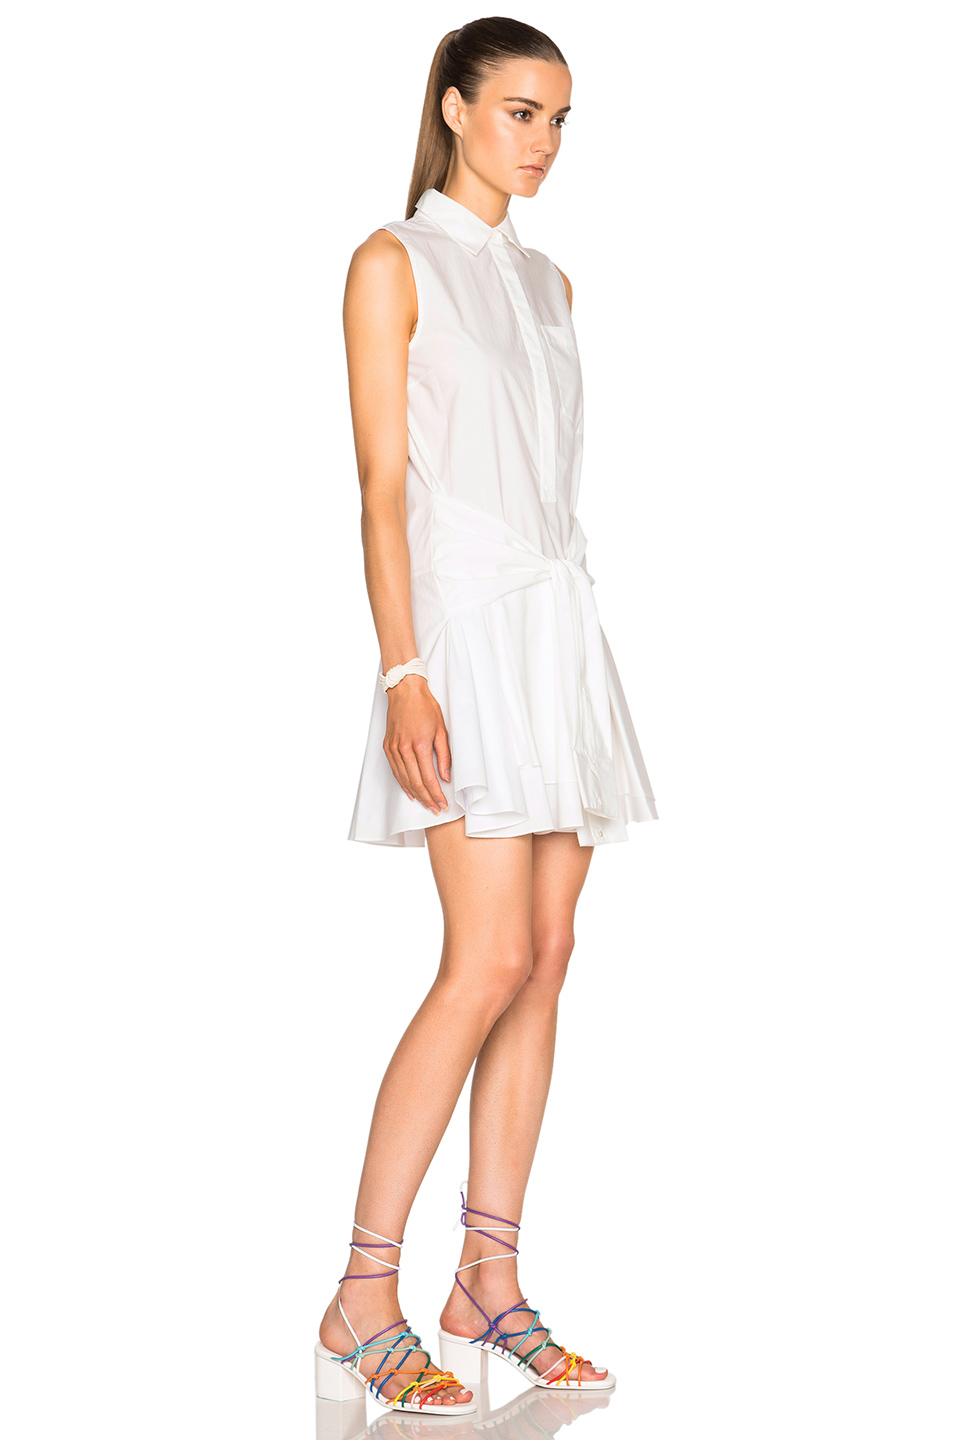 10 crosby derek lam cotton poplin dress in white lyst for Derek lam 10 crosby shirt dress